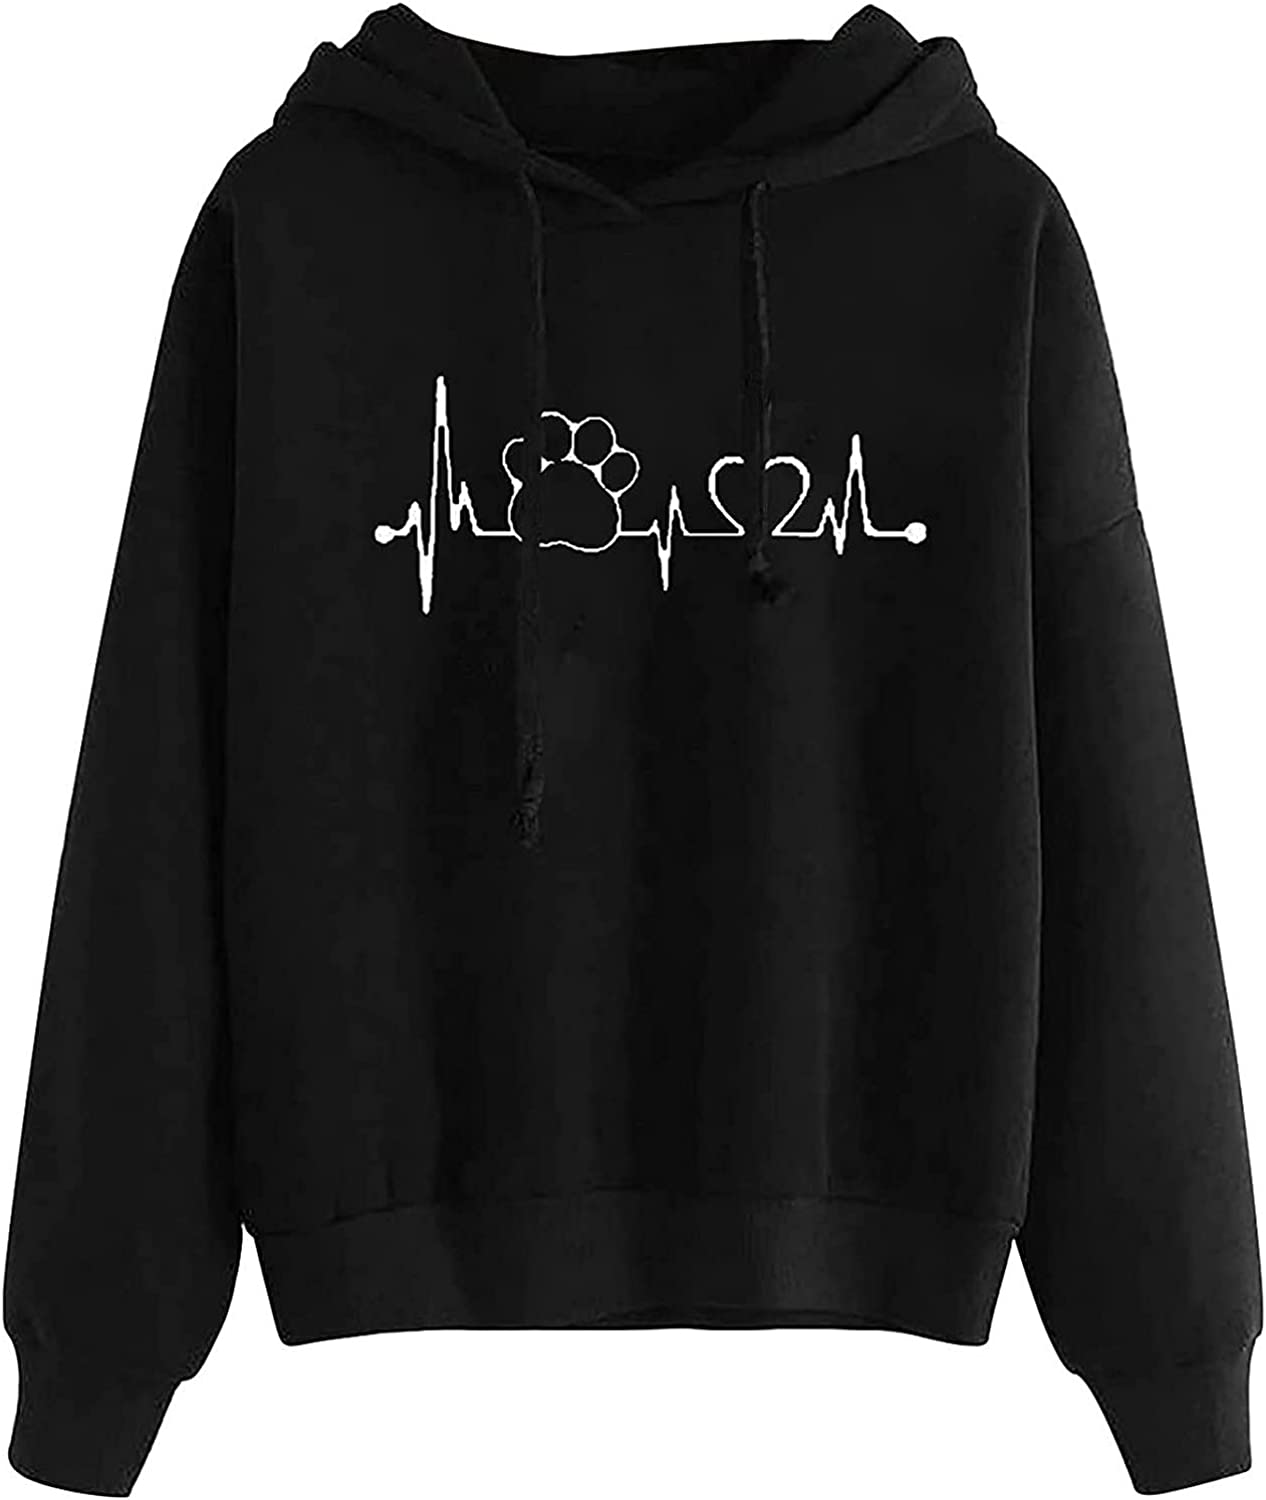 HIRIRI Pullover Hoodies for Women Printing Com Heart New lowest price Orleans Mall Lightweight